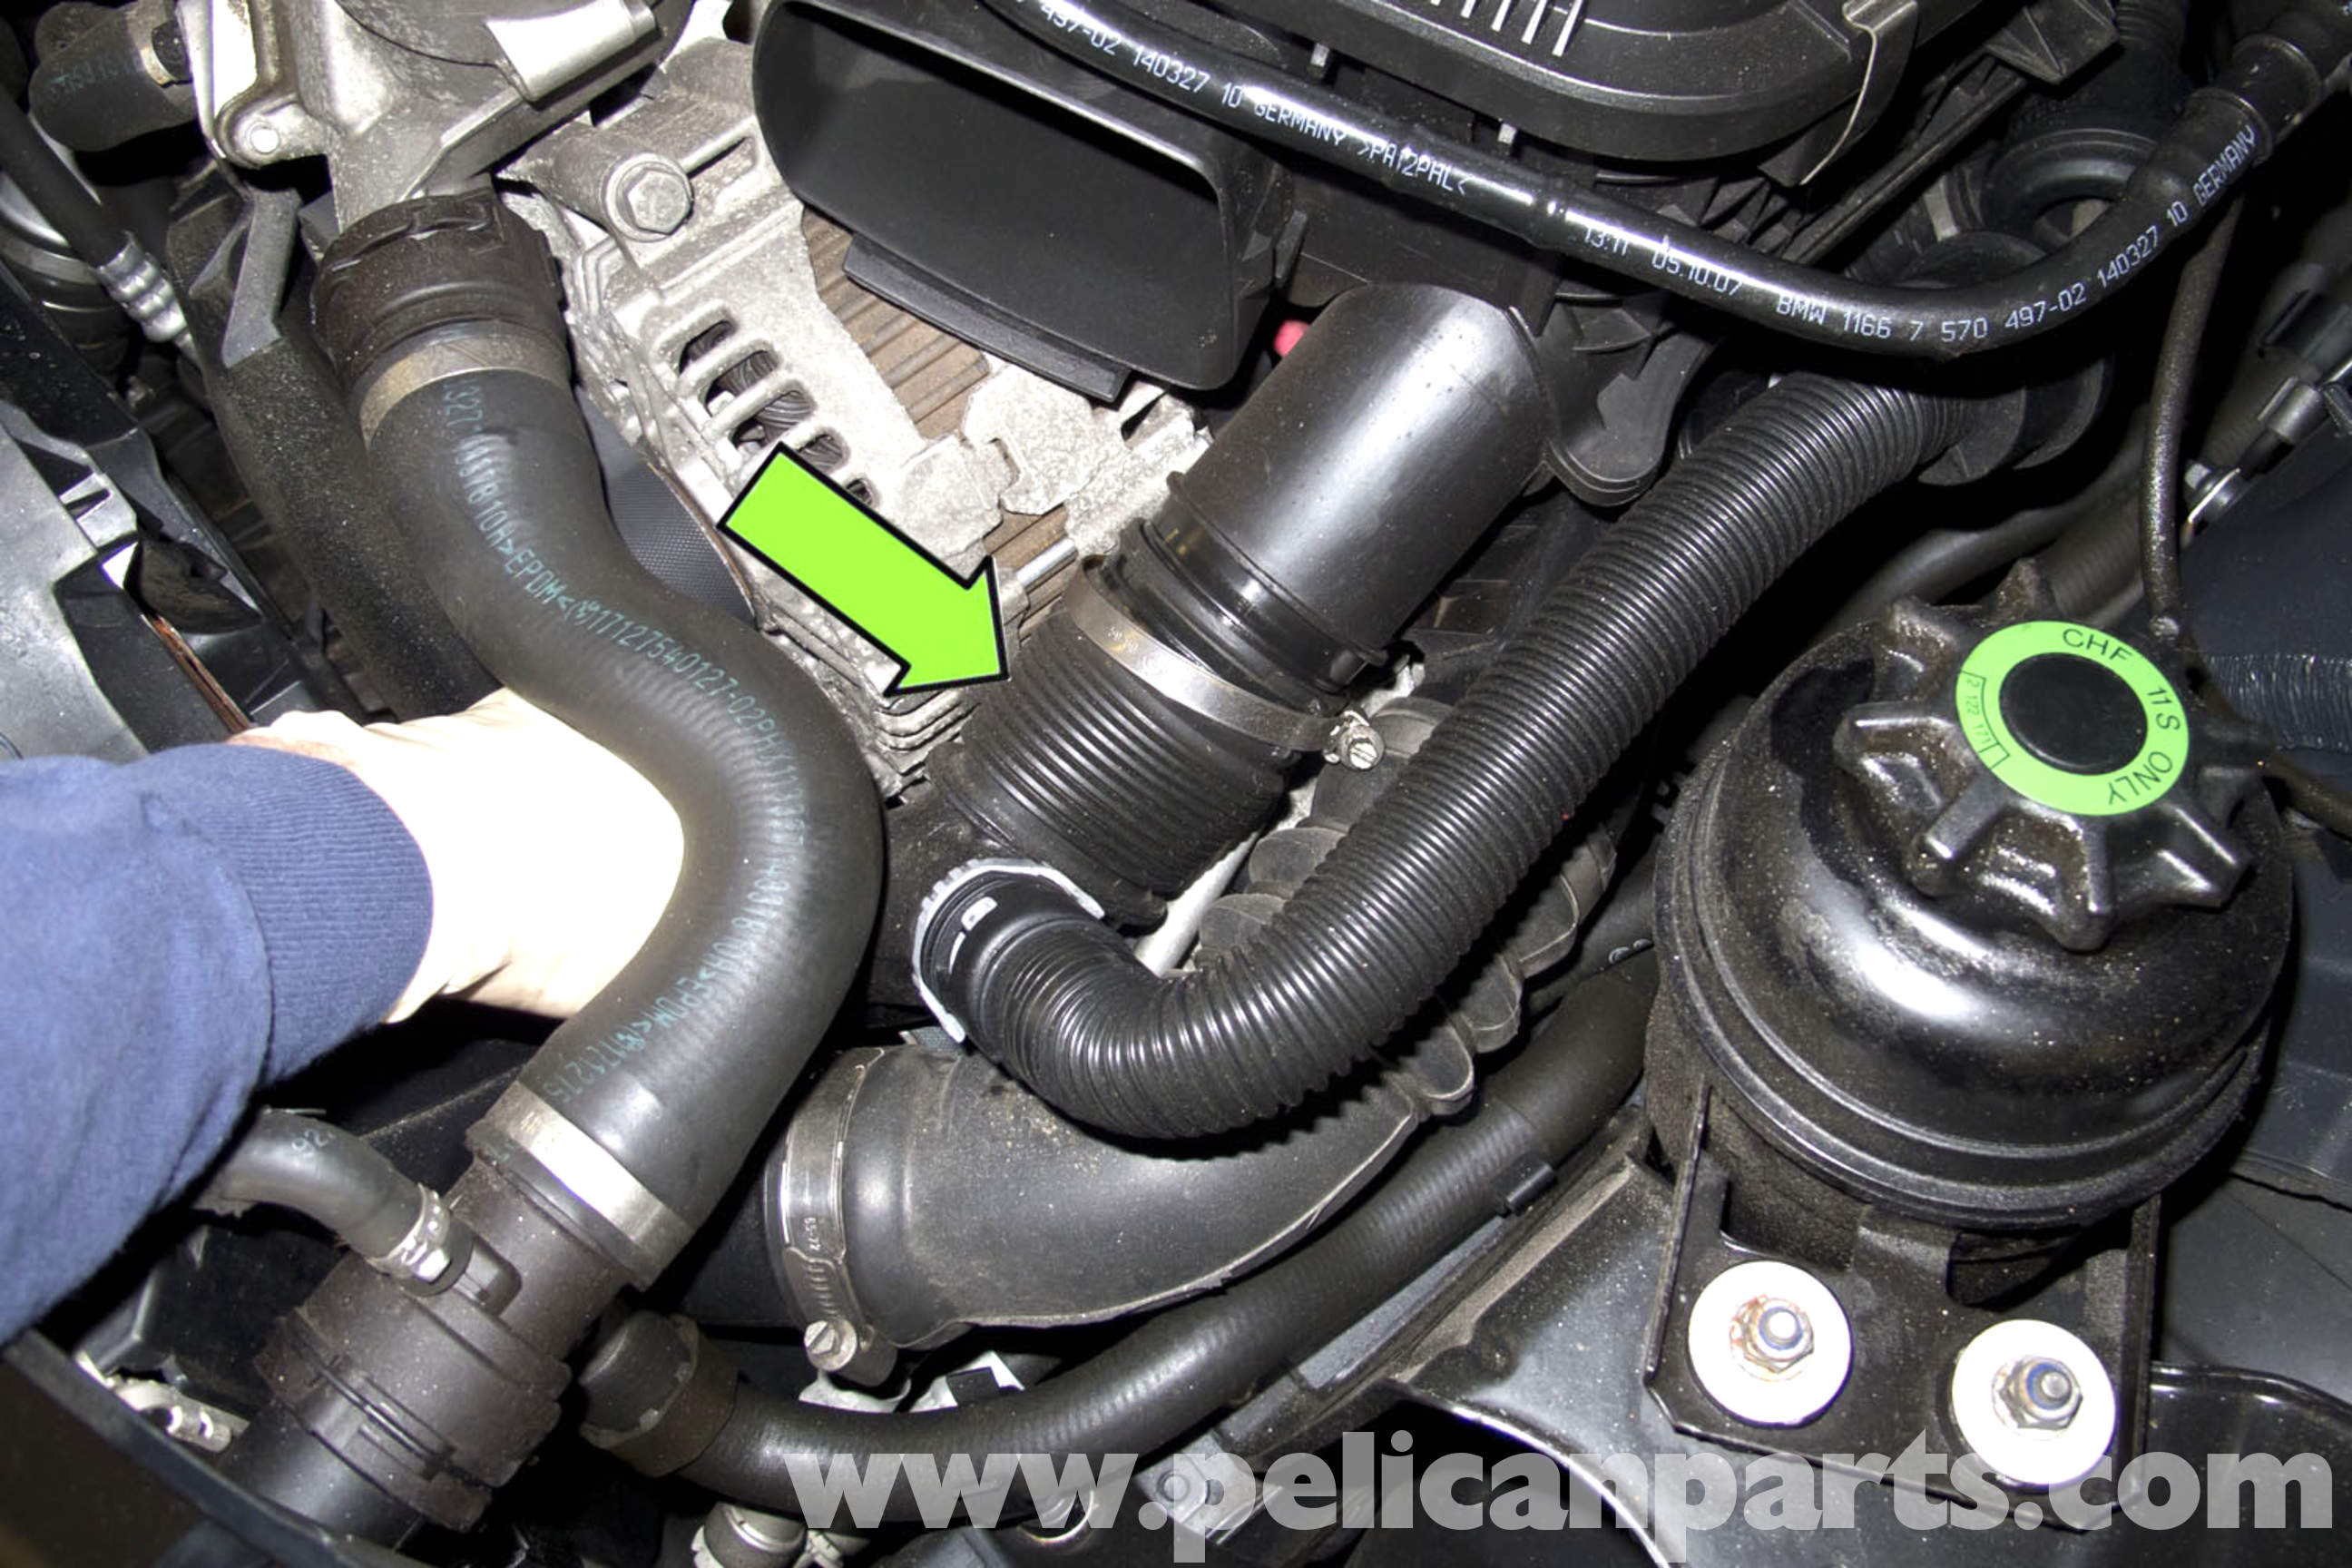 pic18 bmw e90 knock sensor replacement e91, e92, e93 pelican parts BMW E90 Music-Diagram at gsmx.co